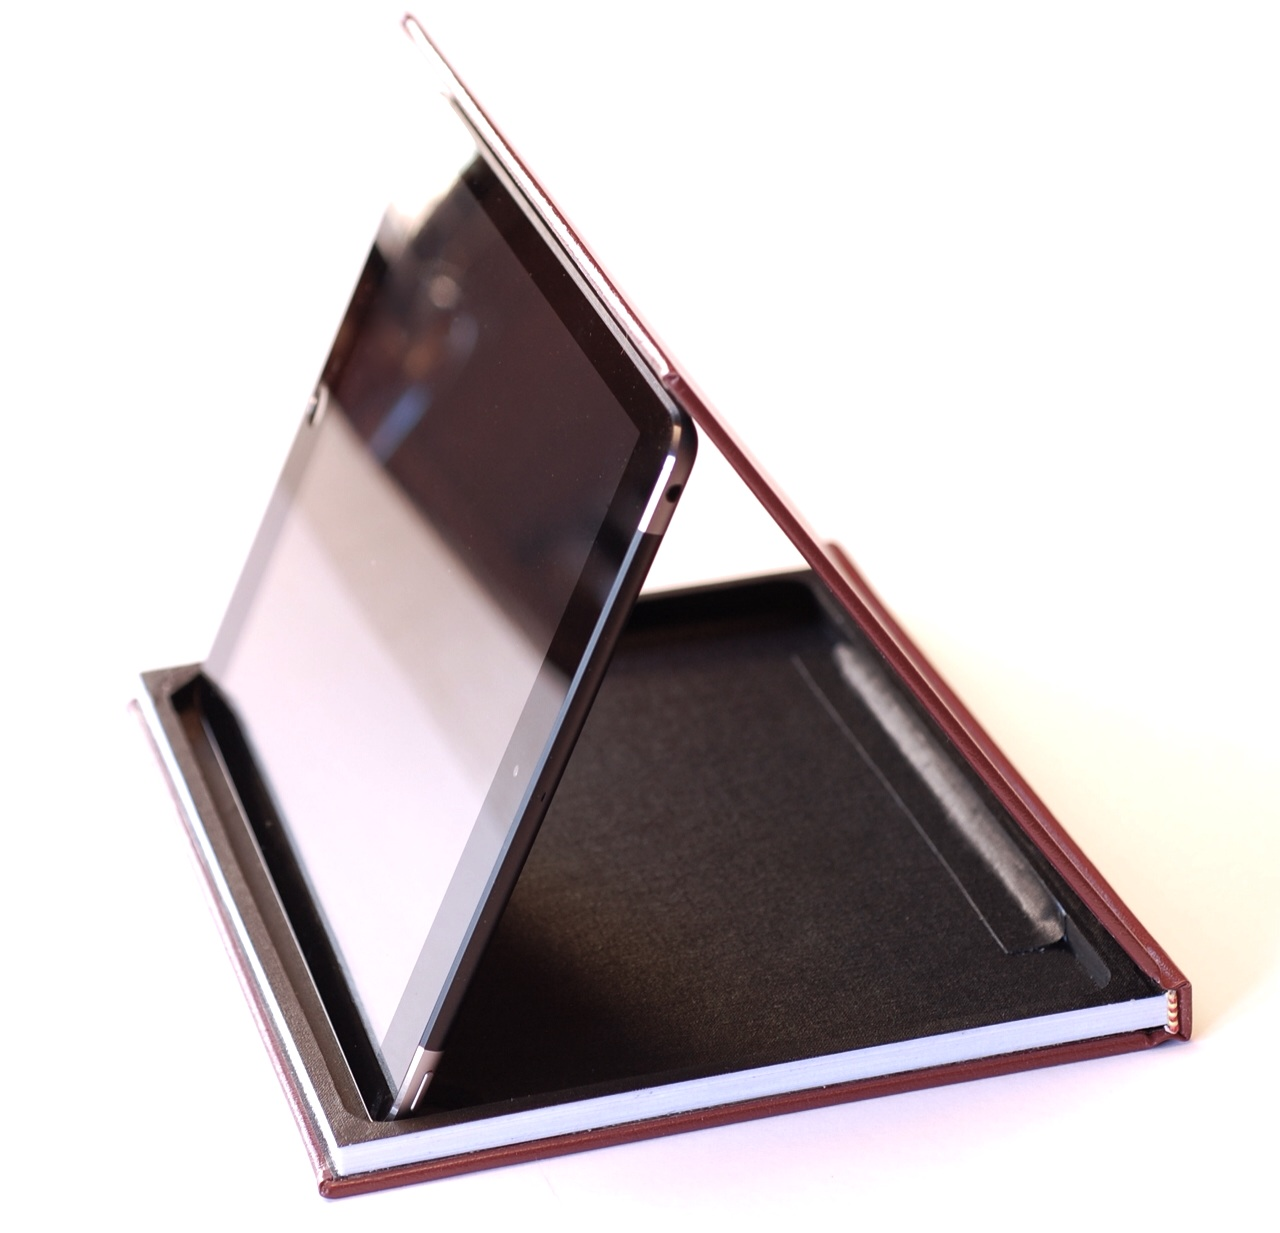 iPad magnets secure the iPad to the case for a variety of viewing positions.